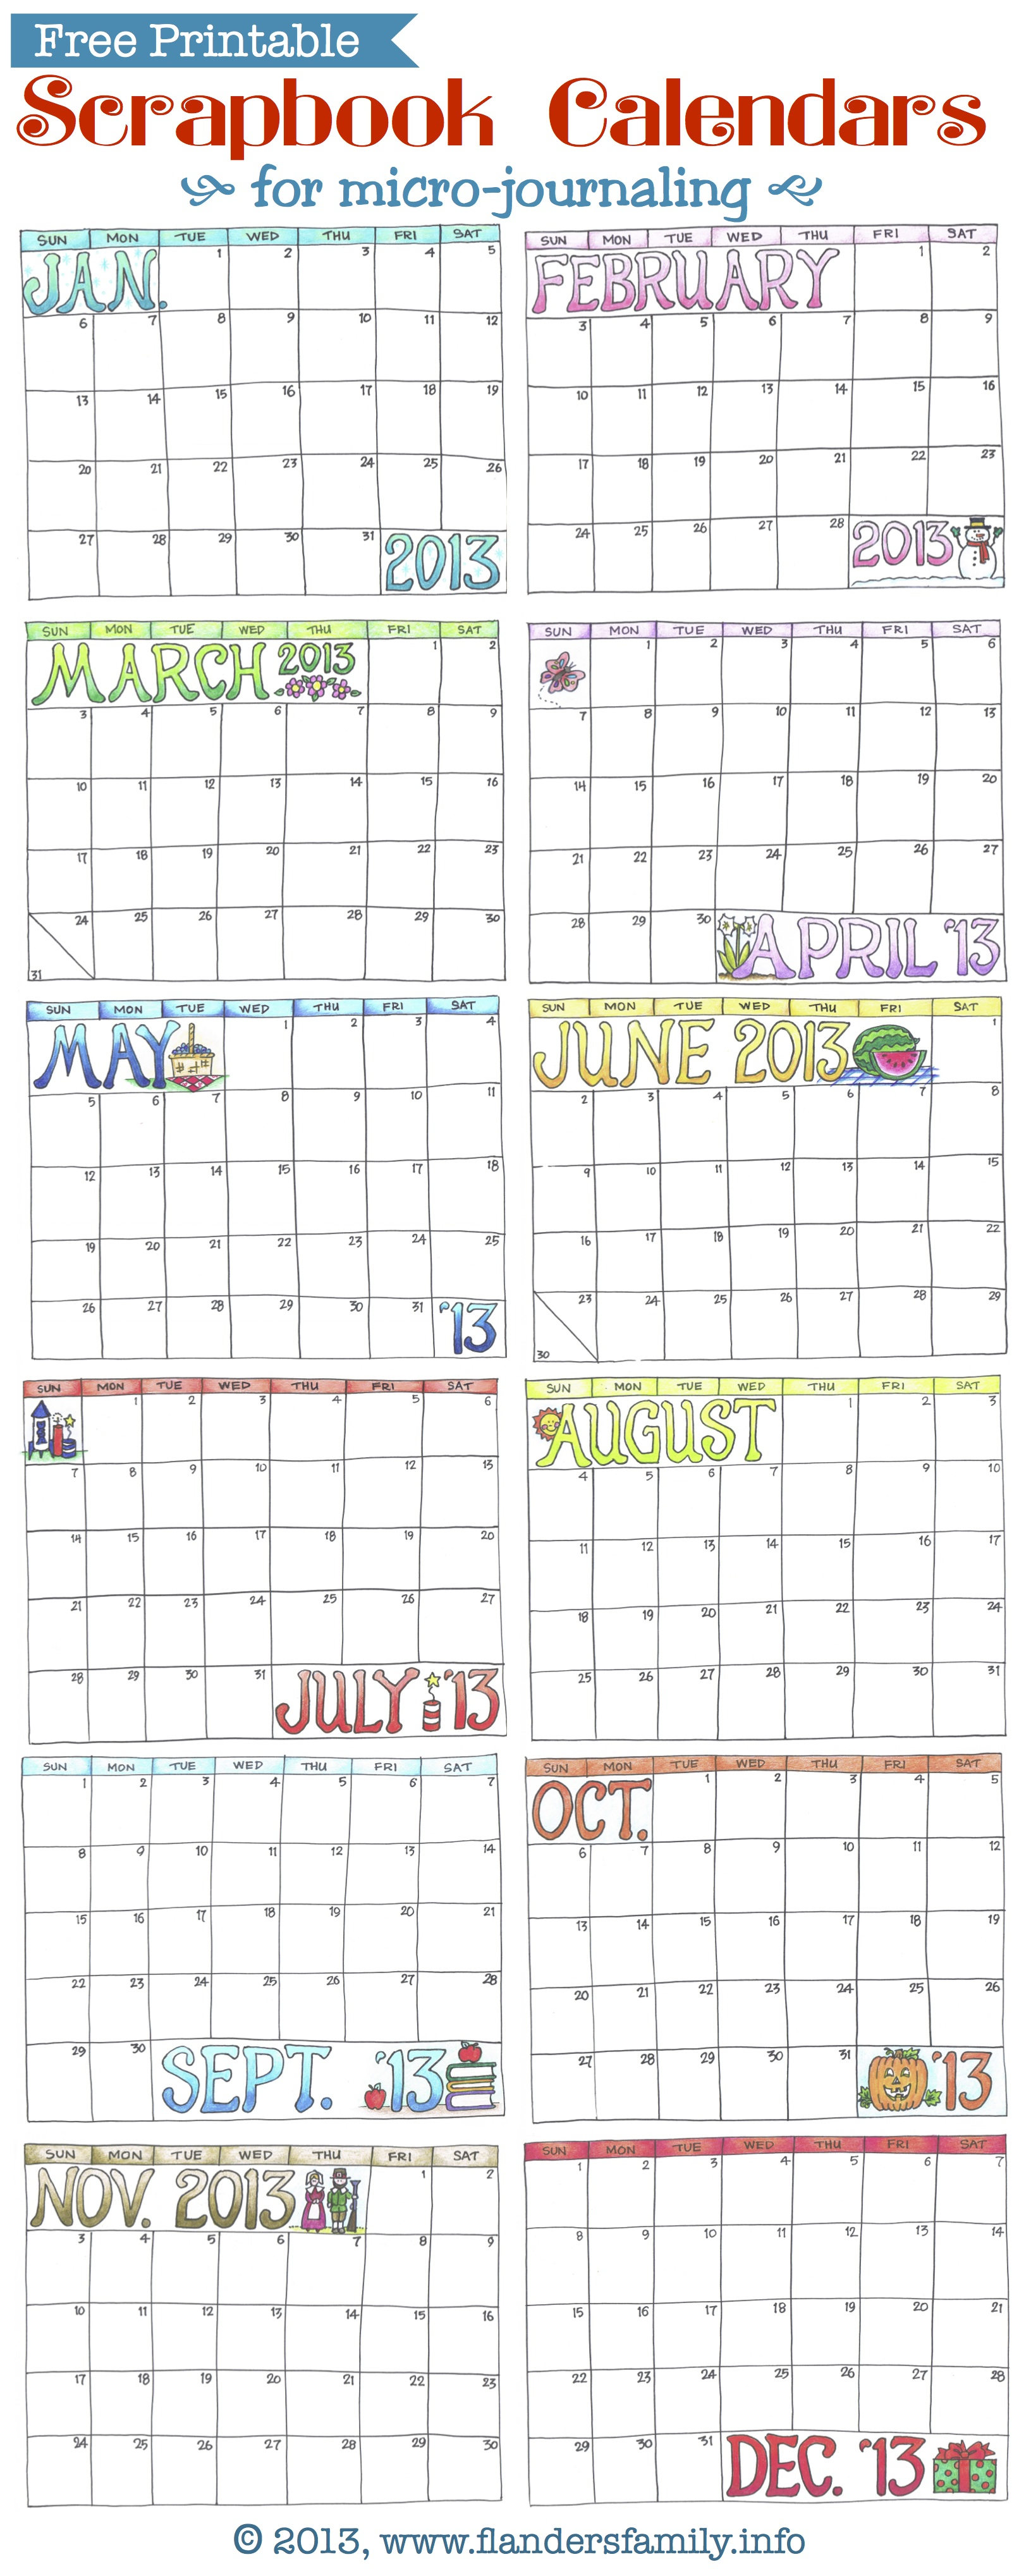 Free Printables Archives - Flanders Family Homelife Throughout Flanders Family 2020 Academic Calendar  2021